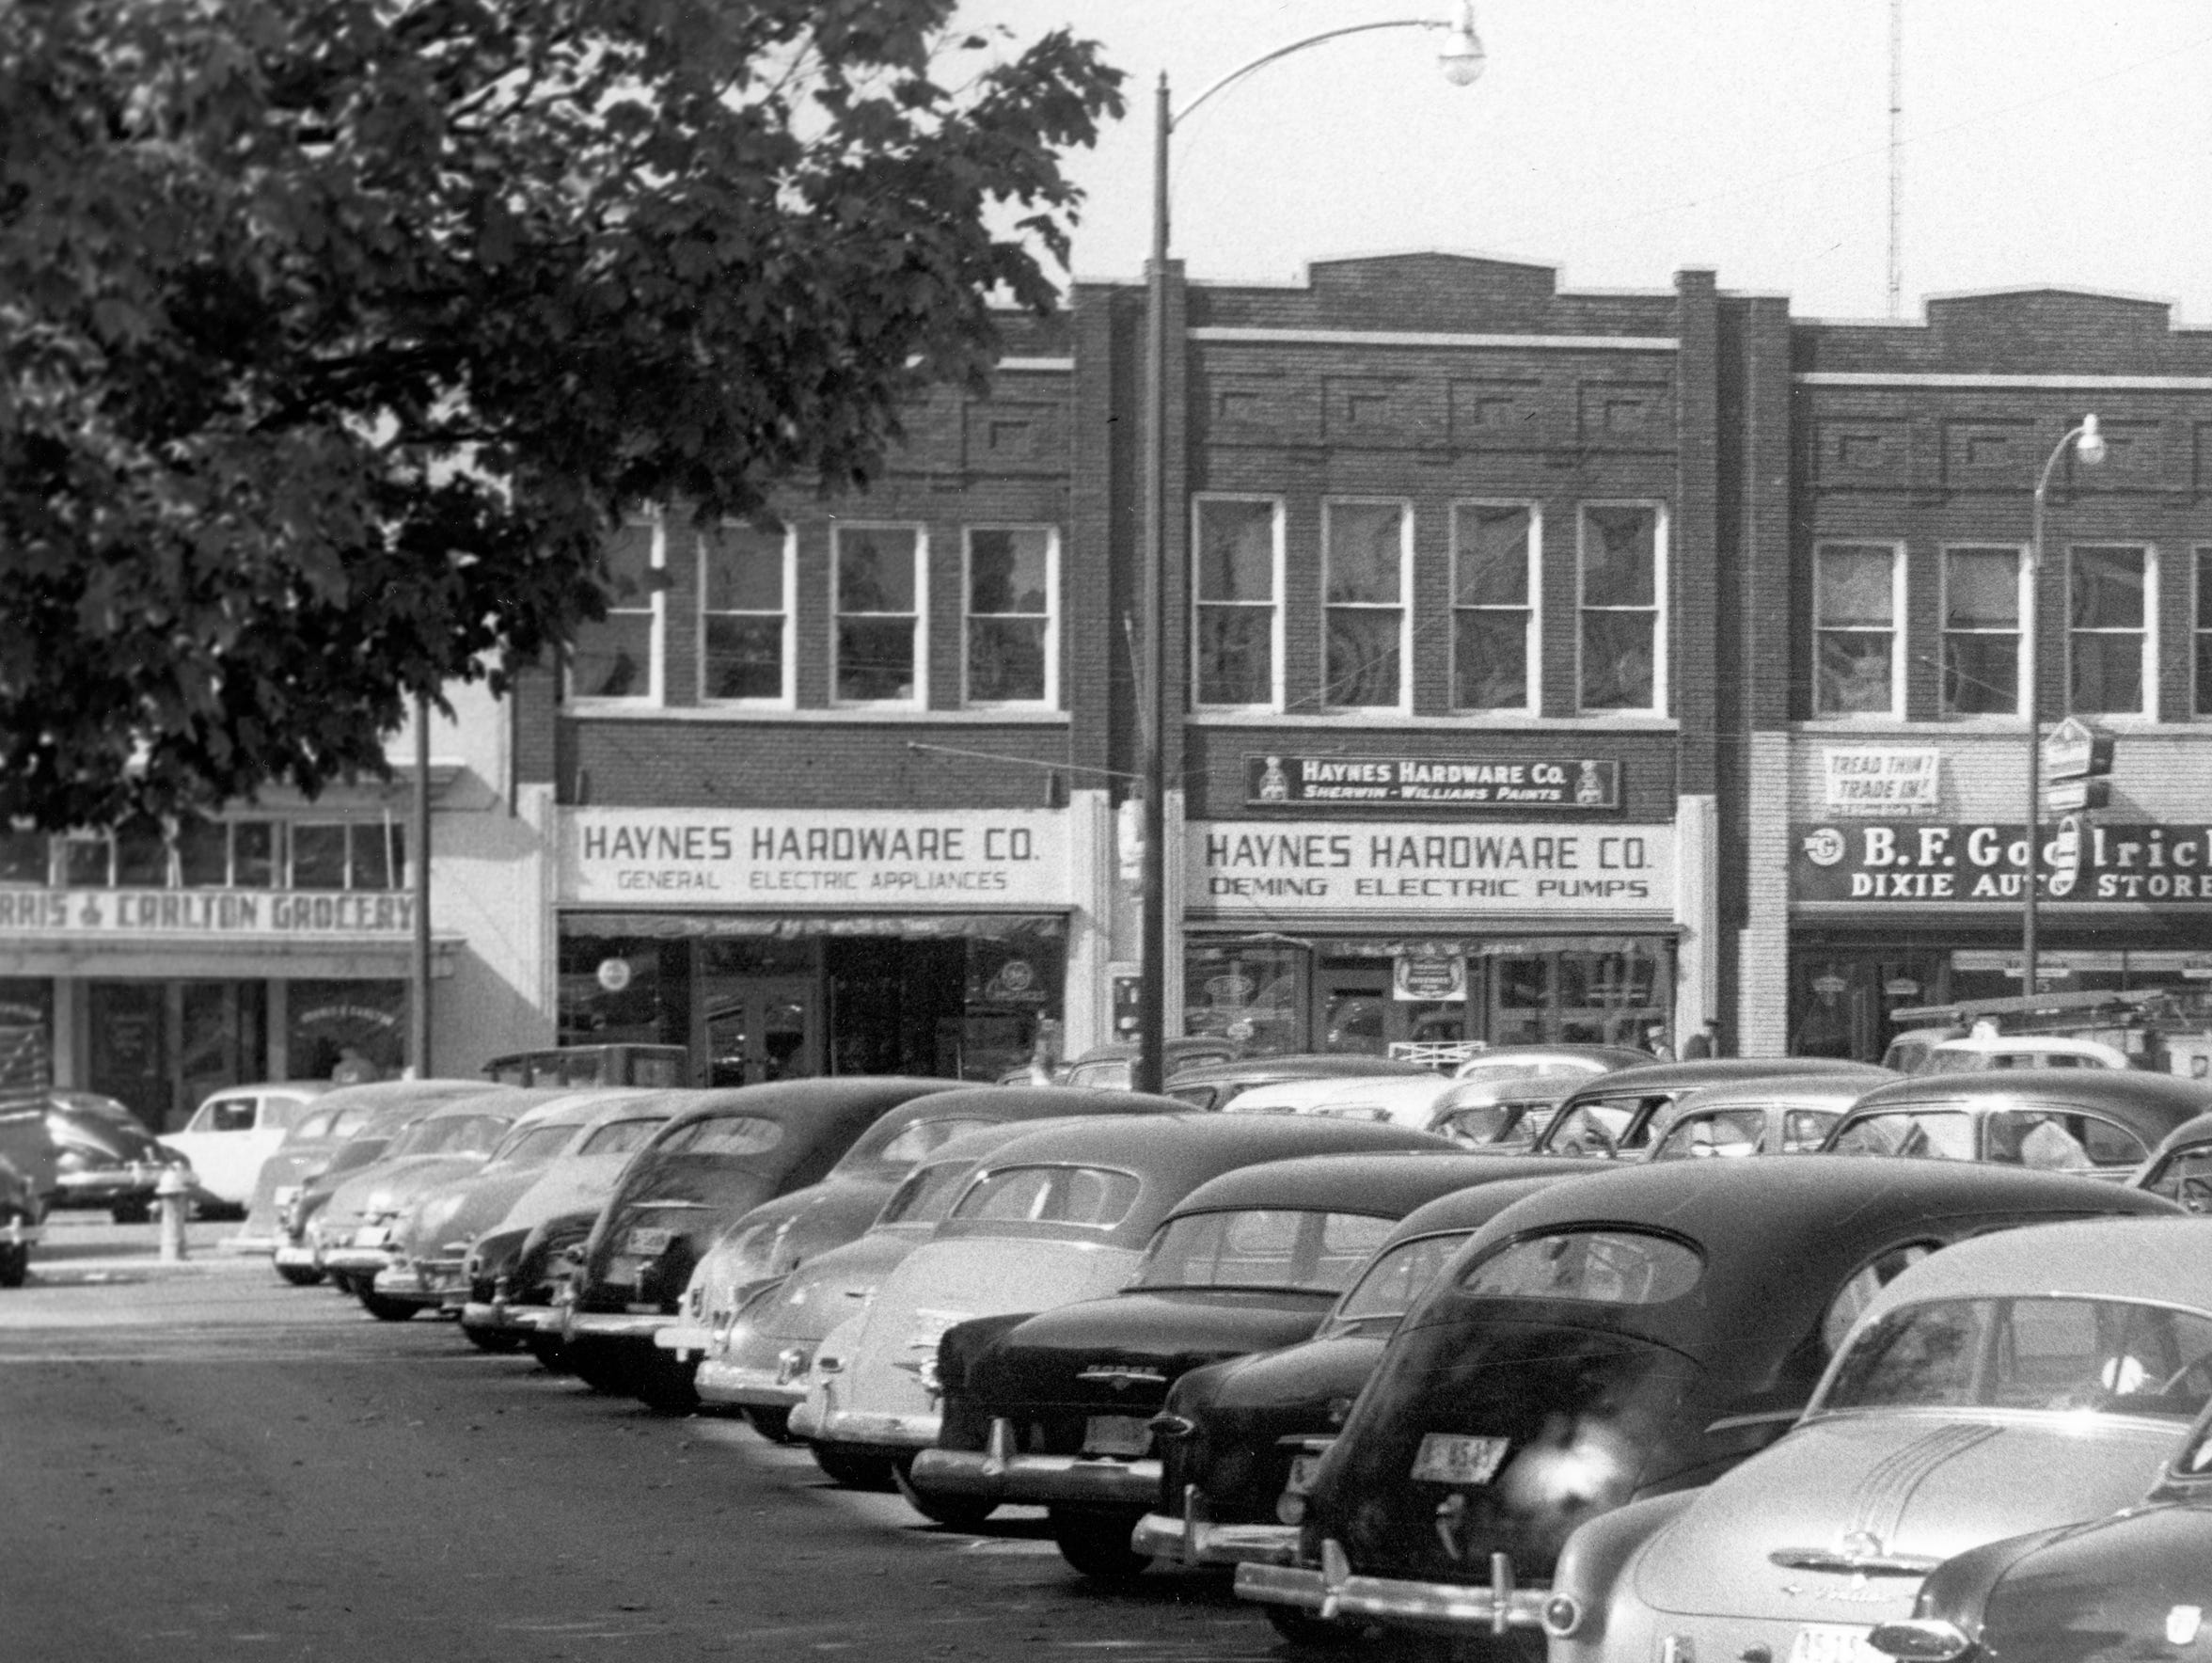 A view of Haynes Hardware's original location on the